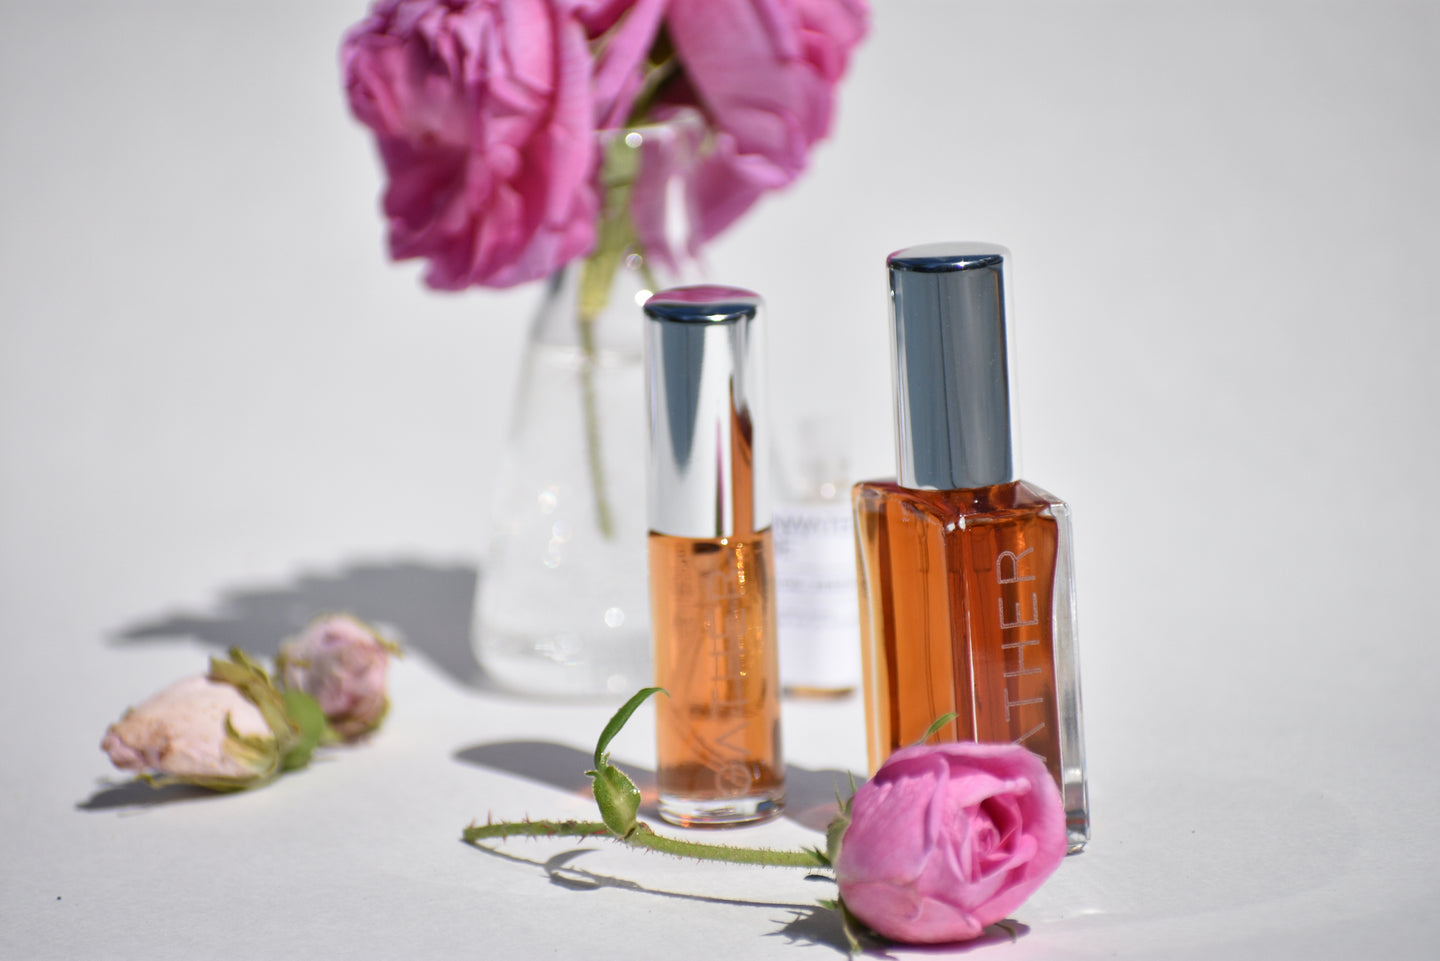 Rainwater Rose botanical perfume by Gather, natural rose fragrance